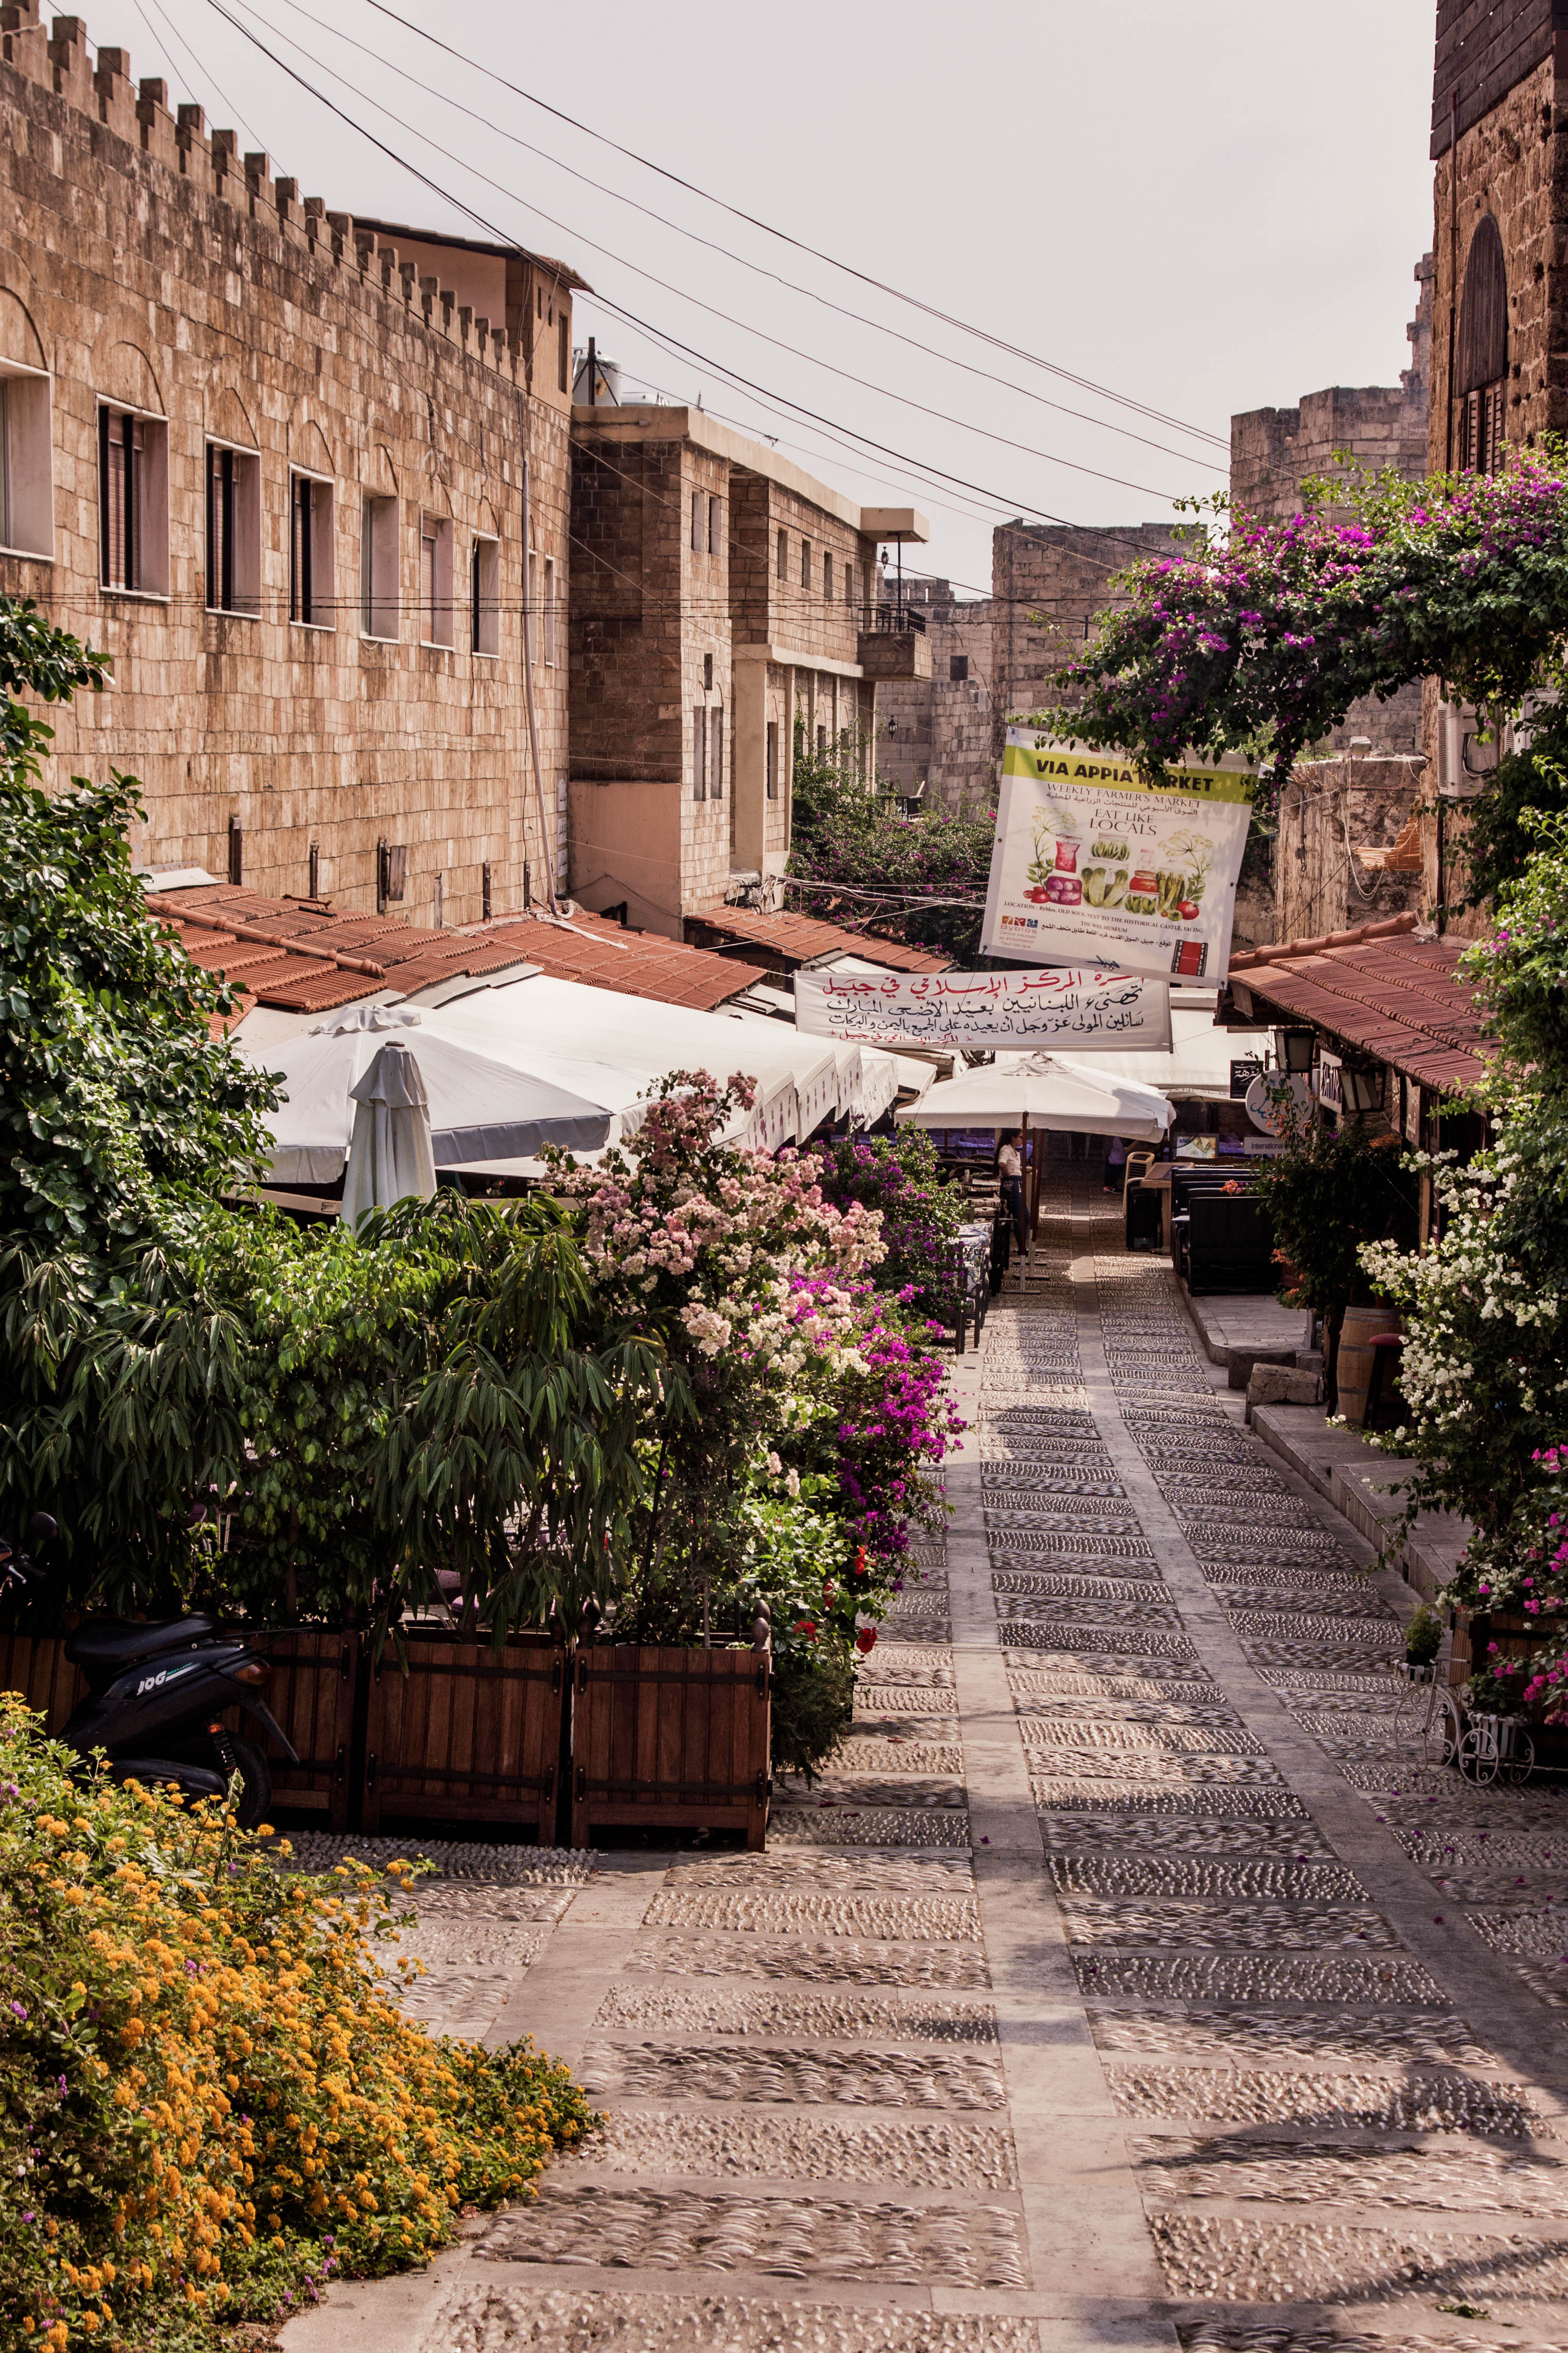 Byblos_streets